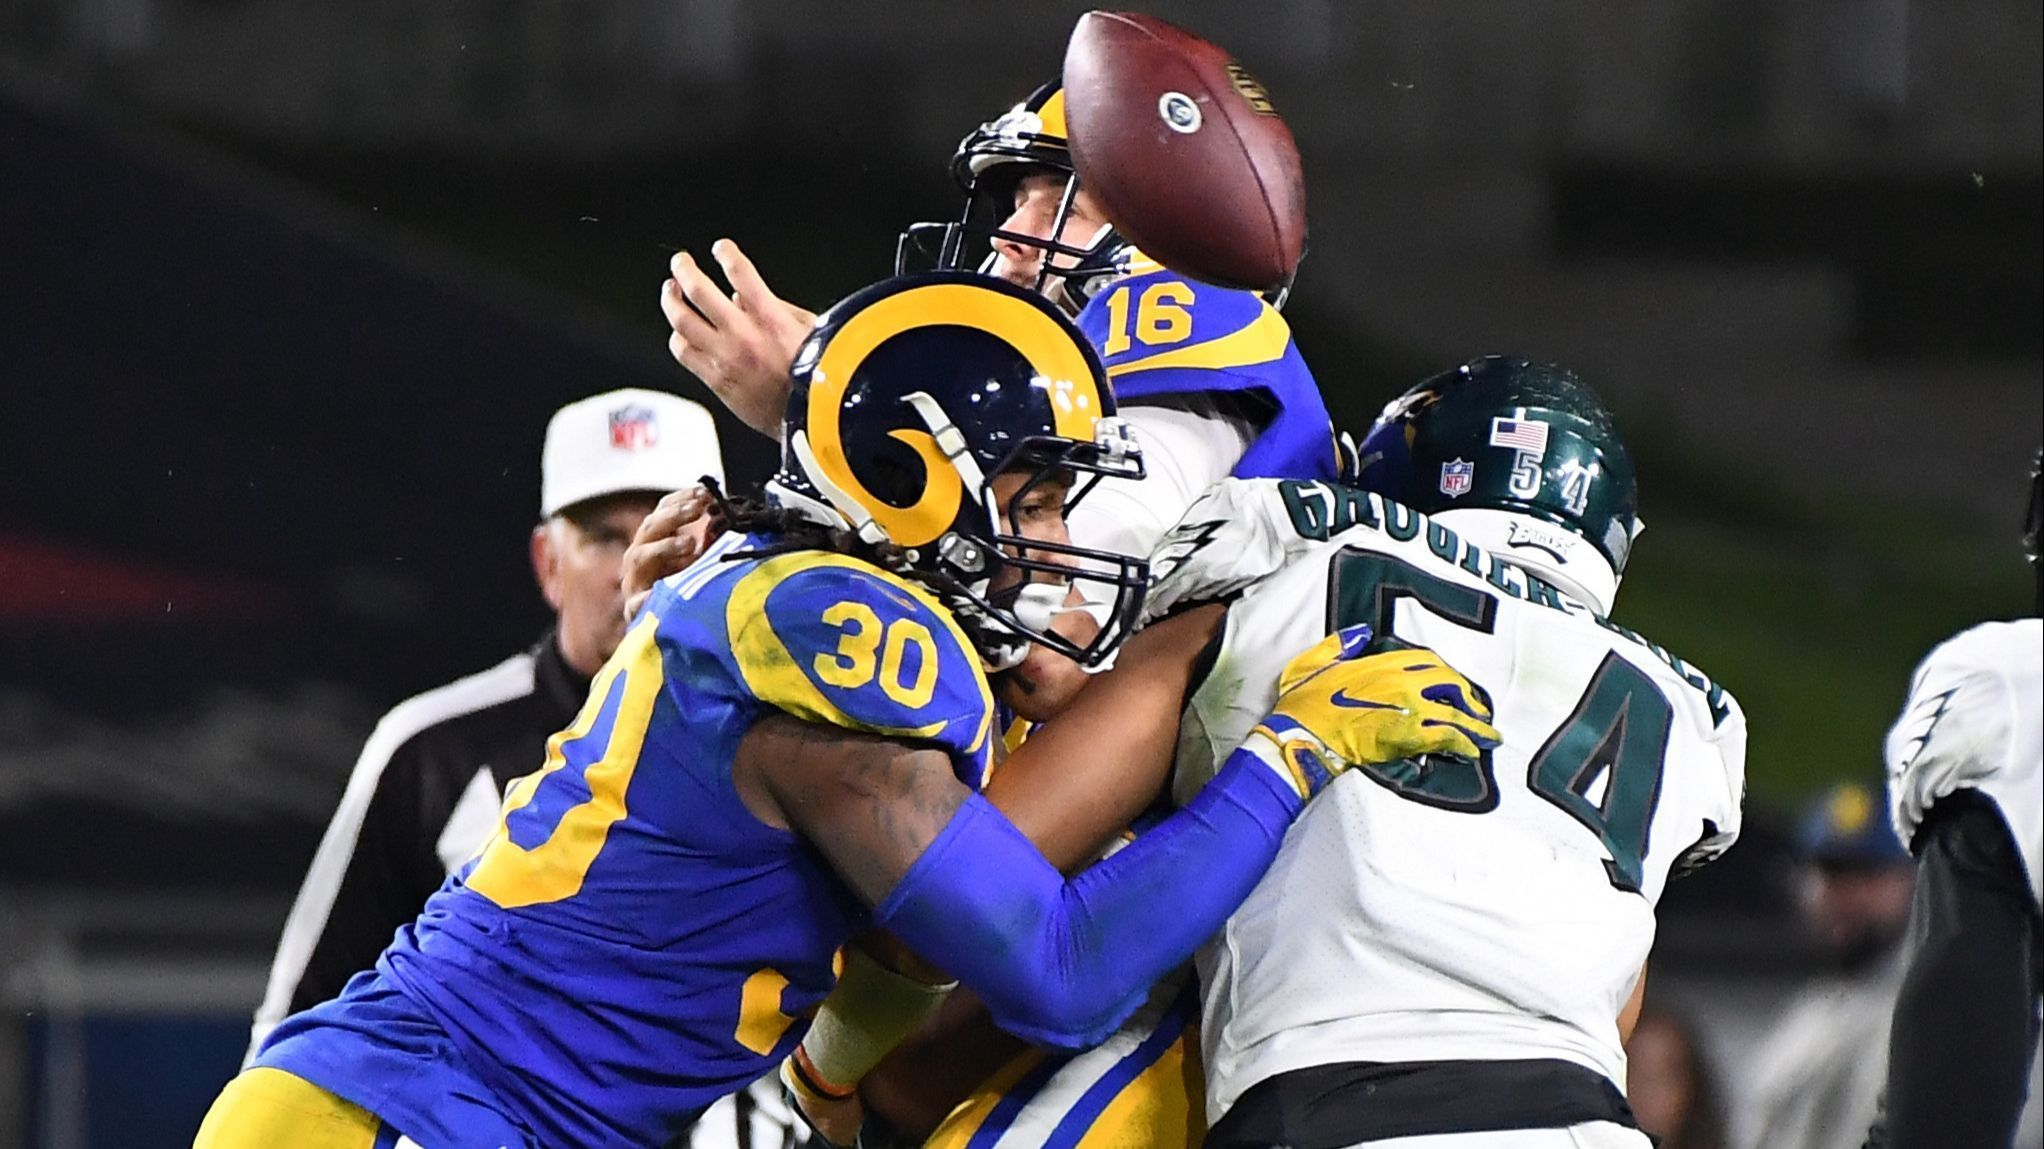 Rams' most troubling trend: Jared Goff has been off the mark